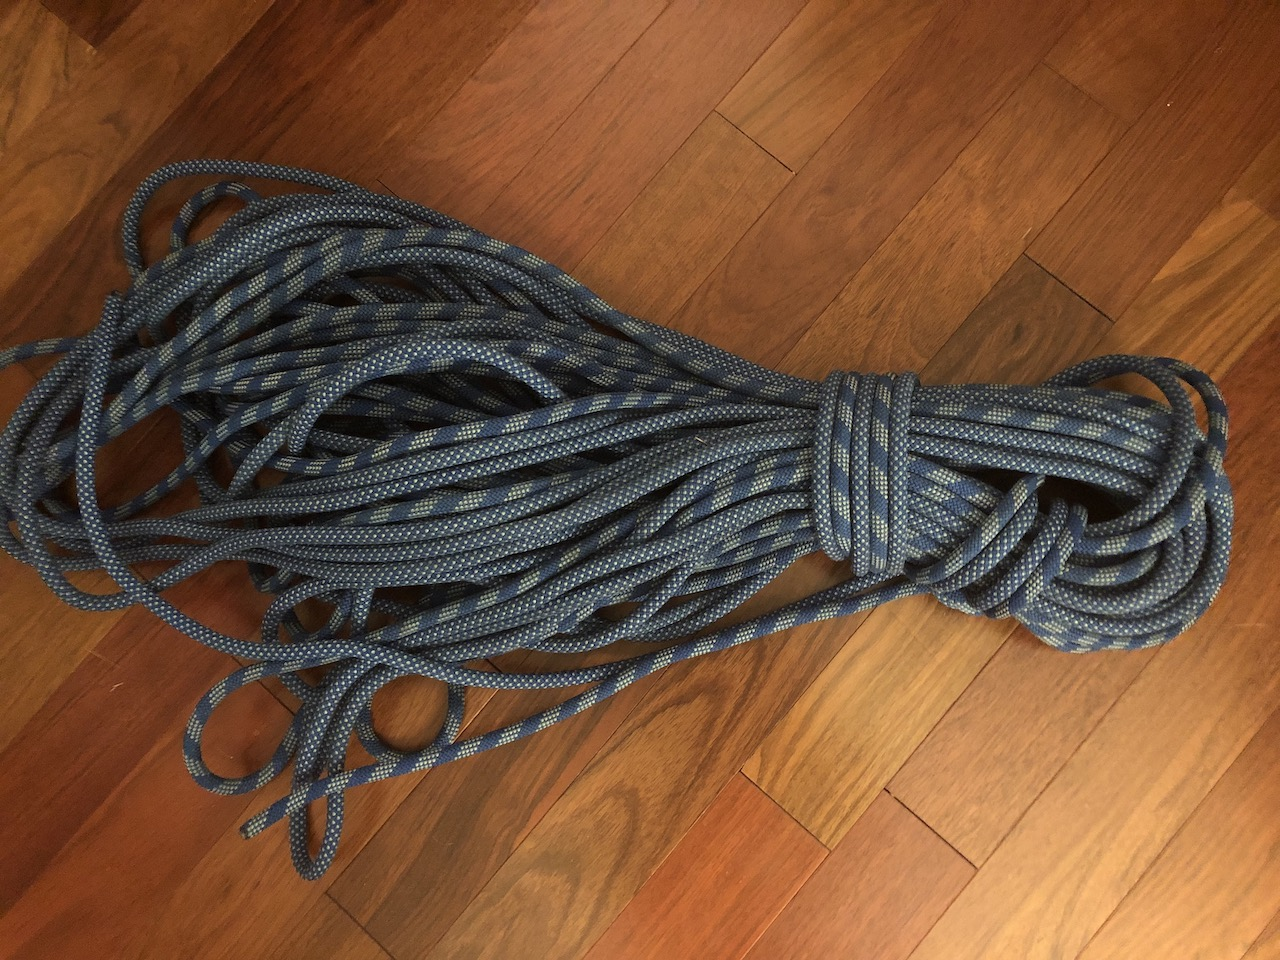 Climbing Rope Coiled Up On A Wooden Floor